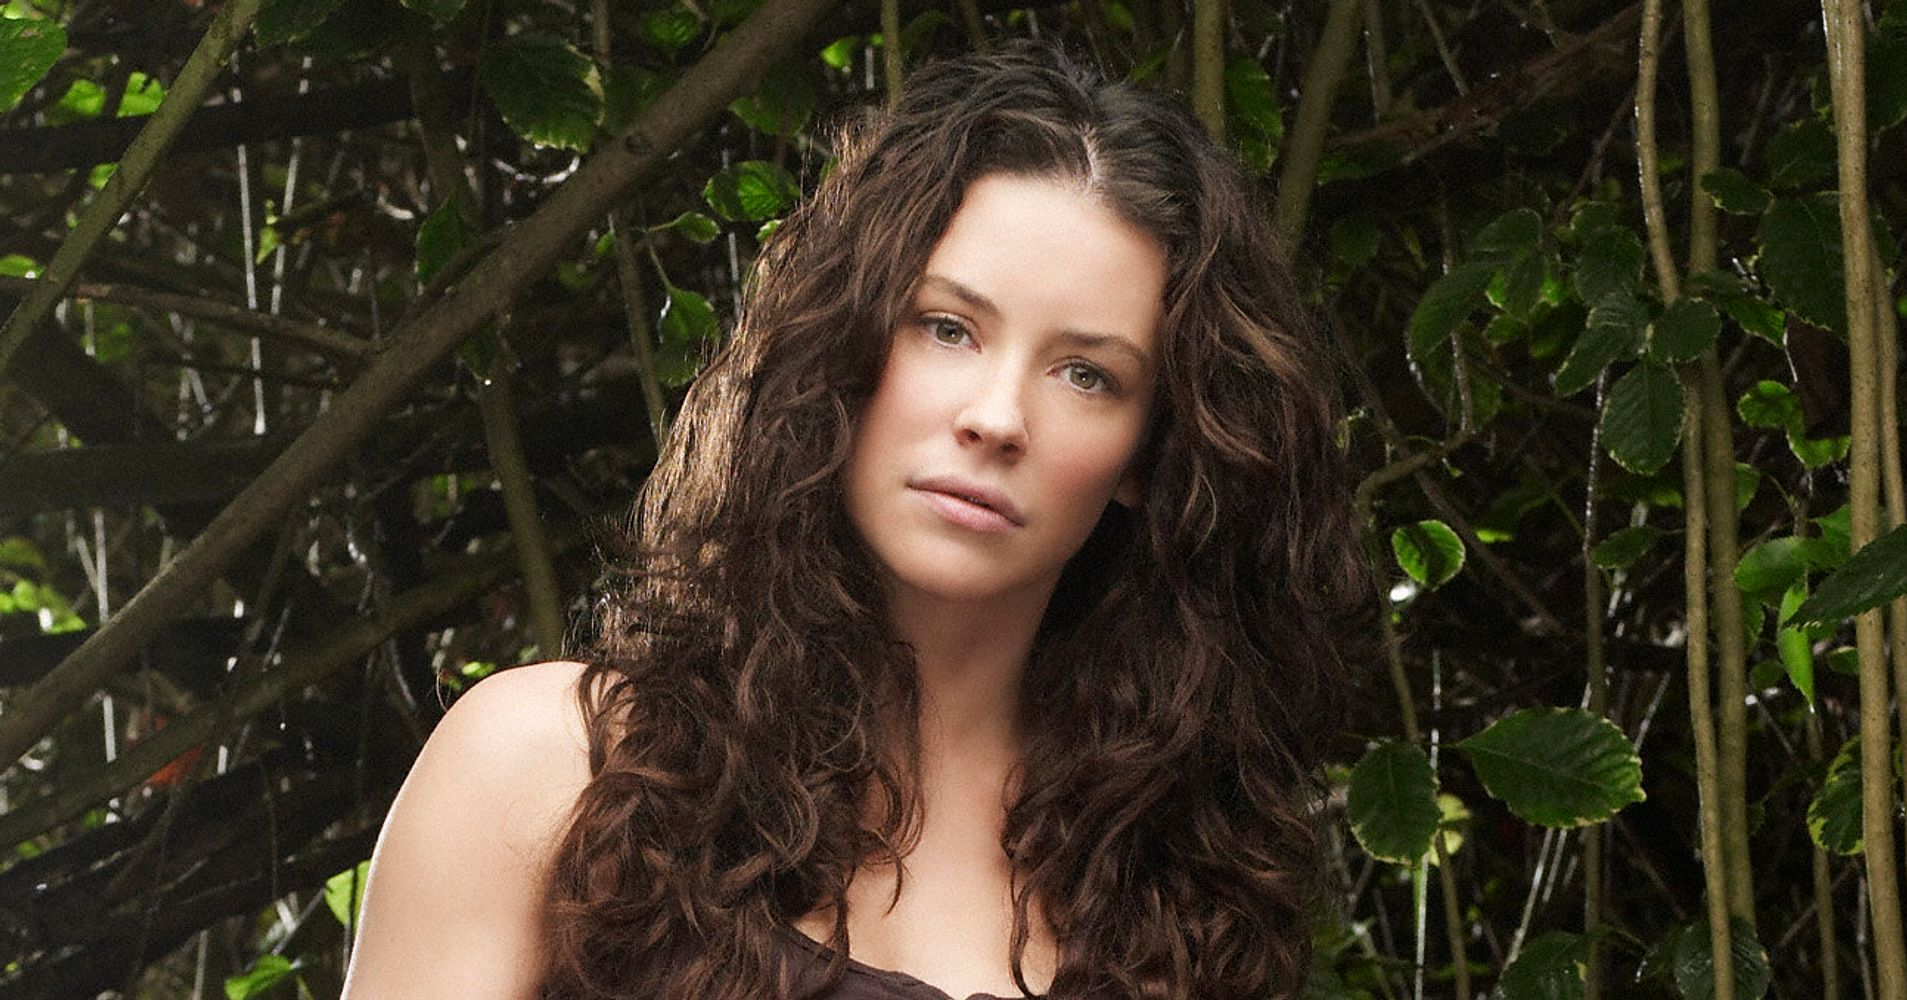 from Andrew naked photos of evangeline lilly